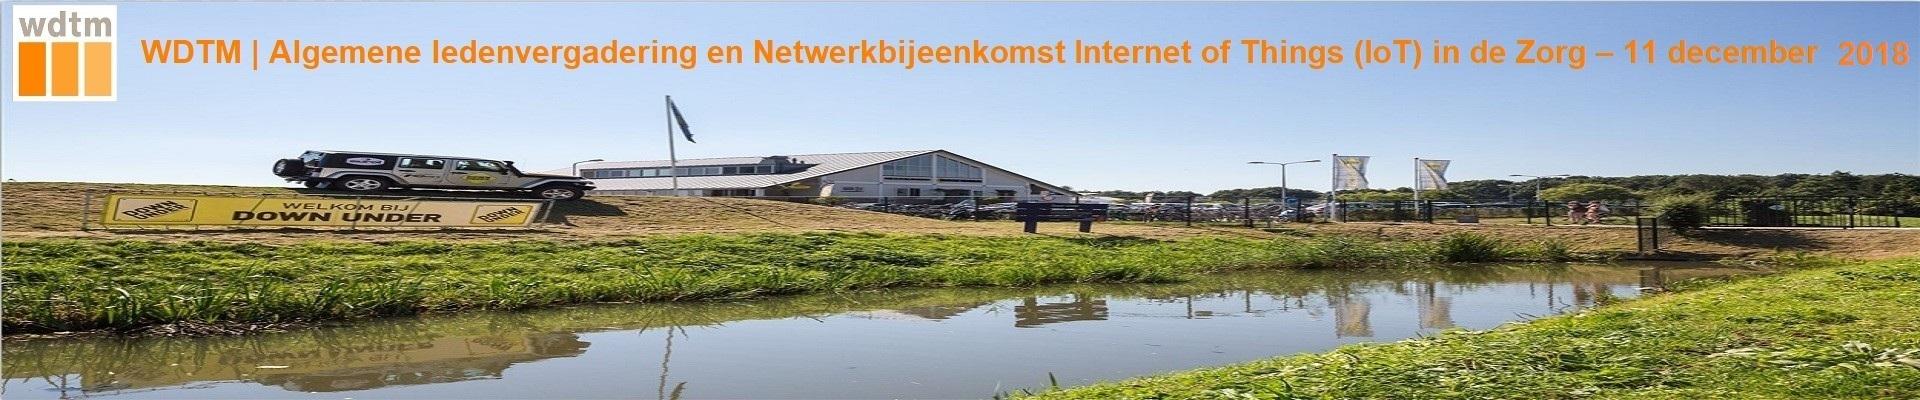 WDTM Netwerkbijeenkomst Internet of Things (IoT) in de Zorg - 11 december 2018